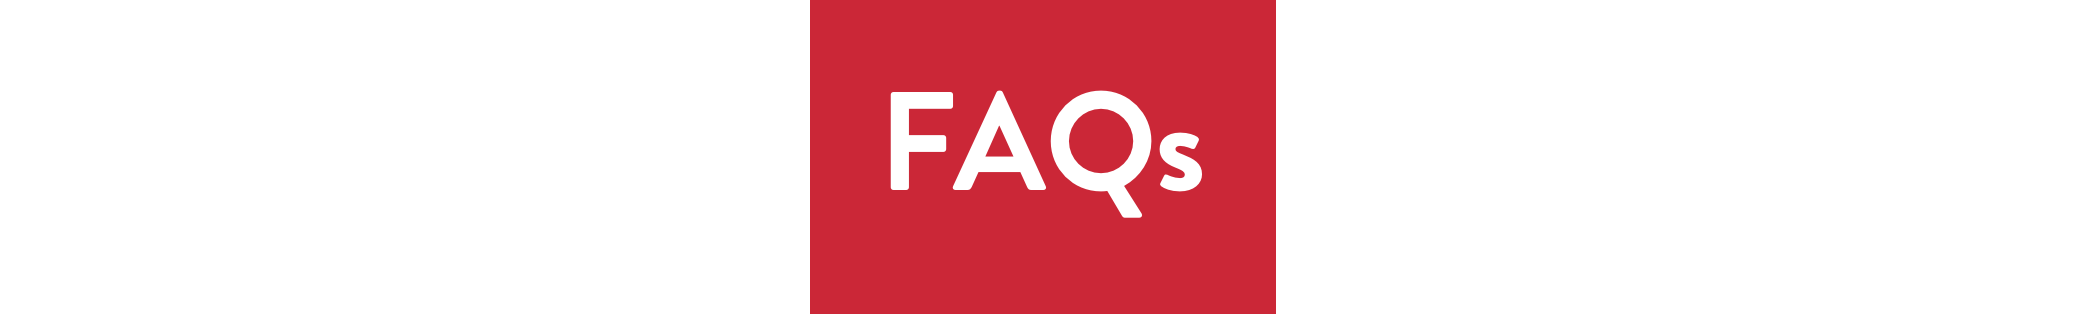 FAQs Button.png